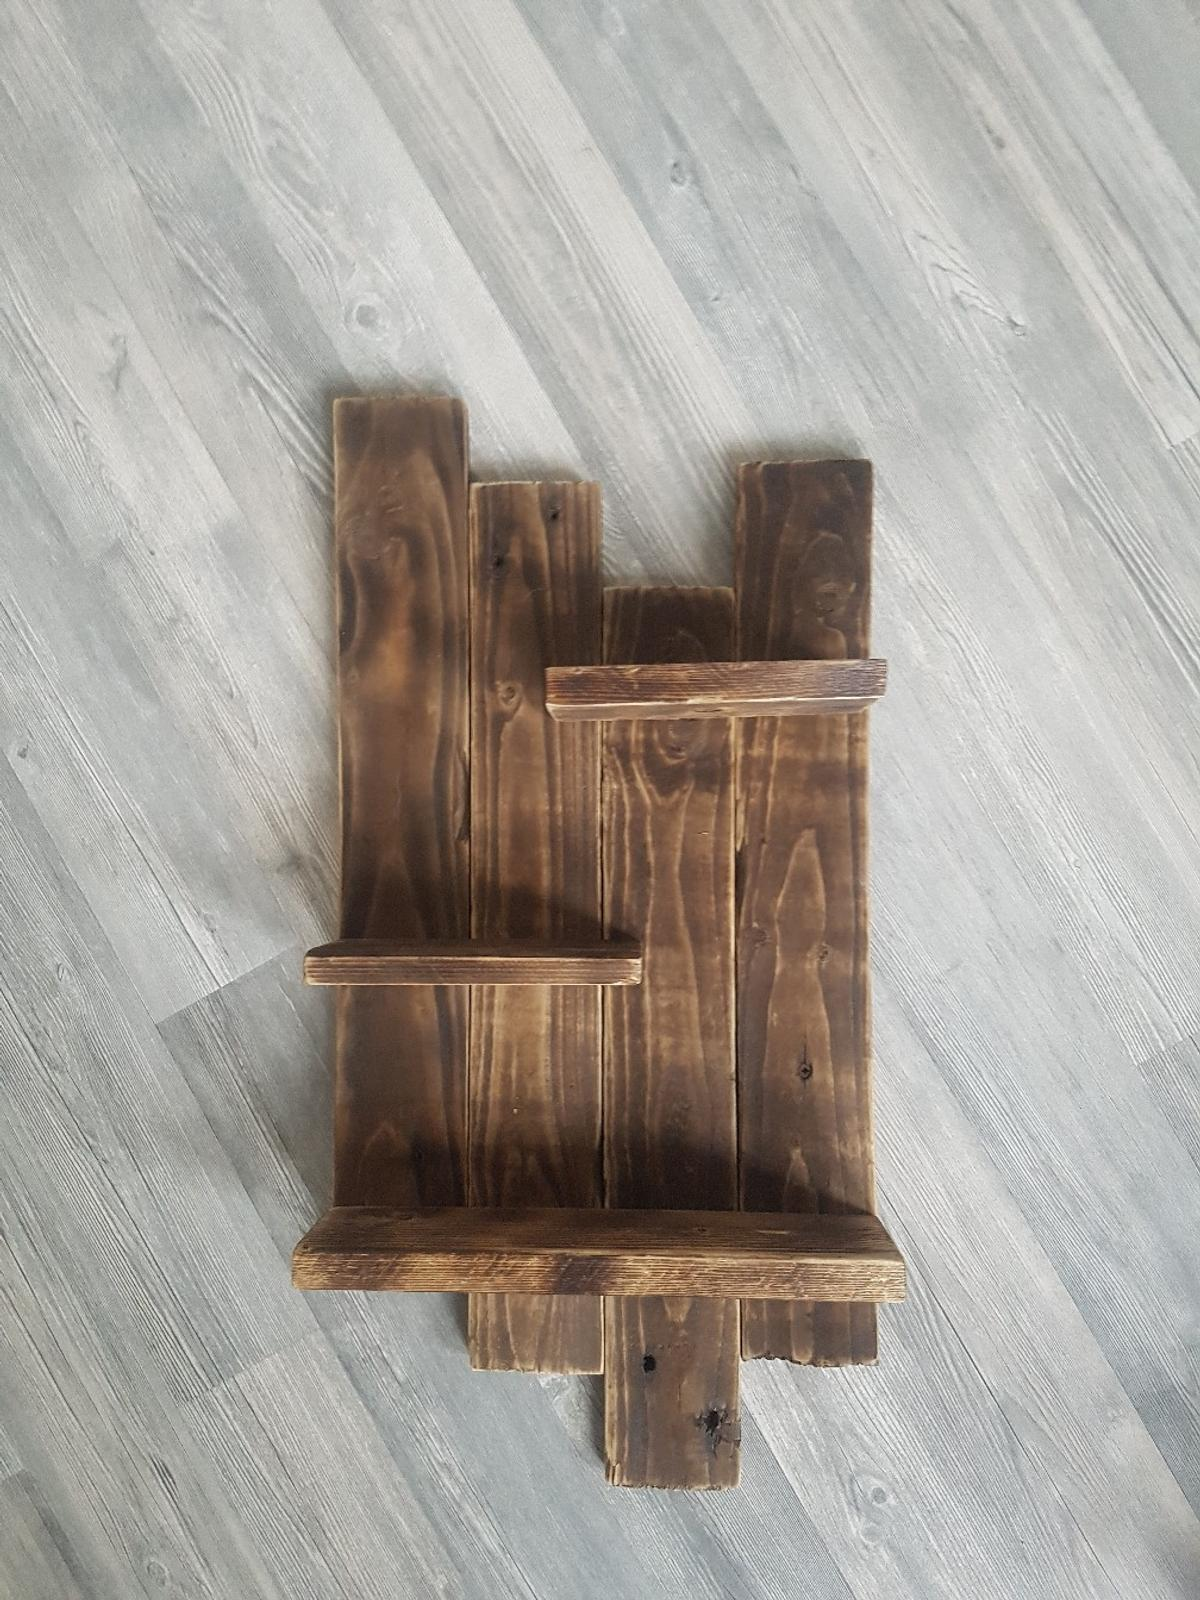 Regal Holz Neu. Handgefertigtes Holz Regal. Rustikal. In 24534 Neumünster For €29.00 For Sale | Shpock